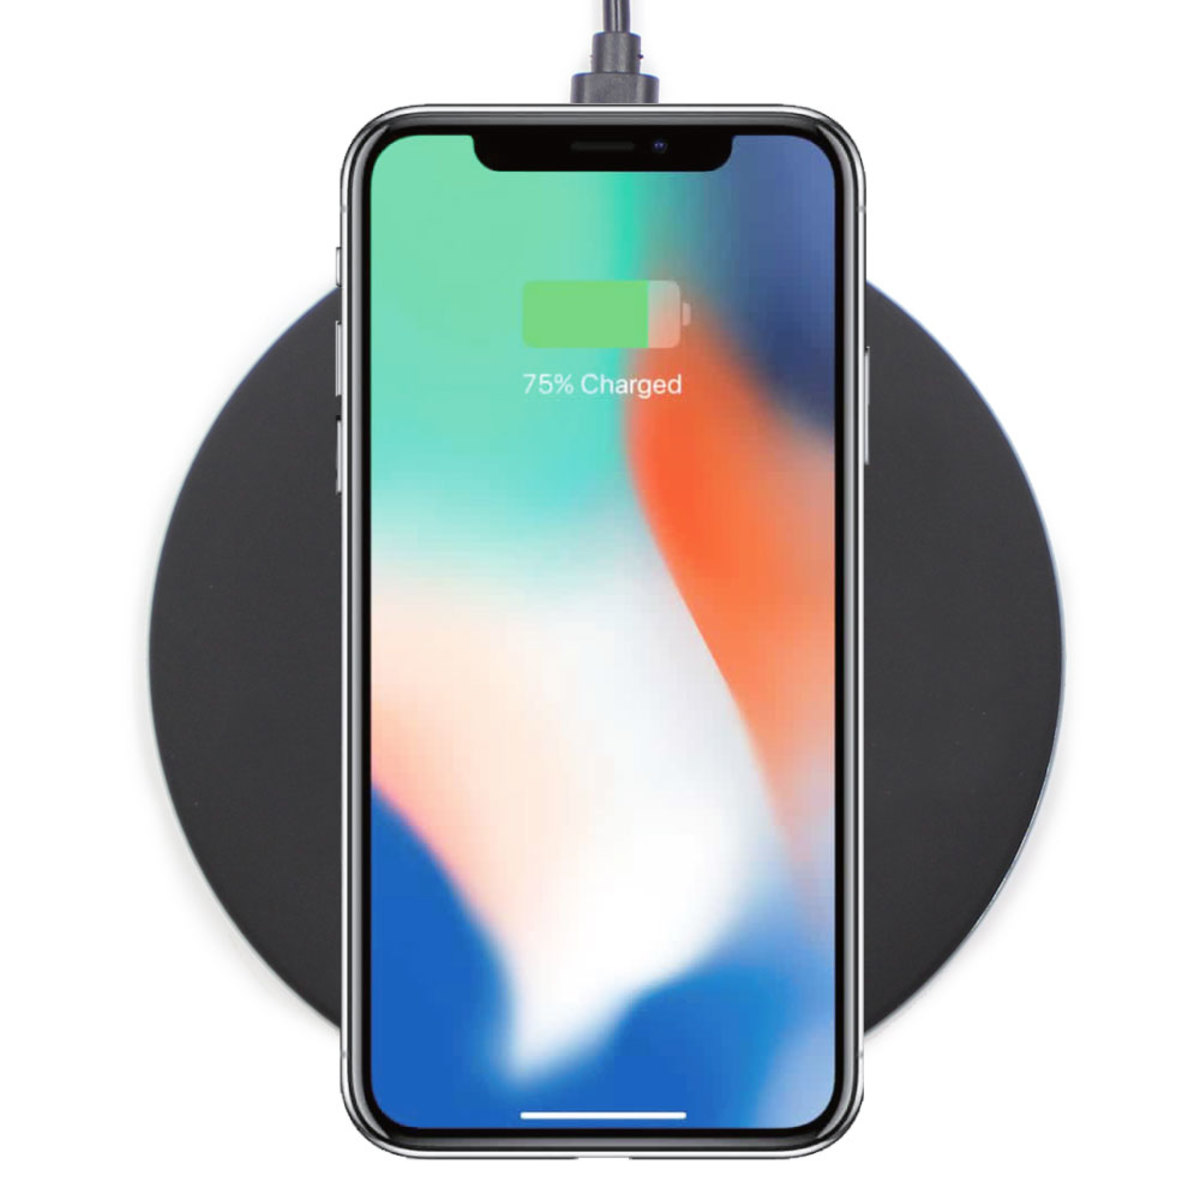 10W Ultra-Slim Wireless Fast Charger